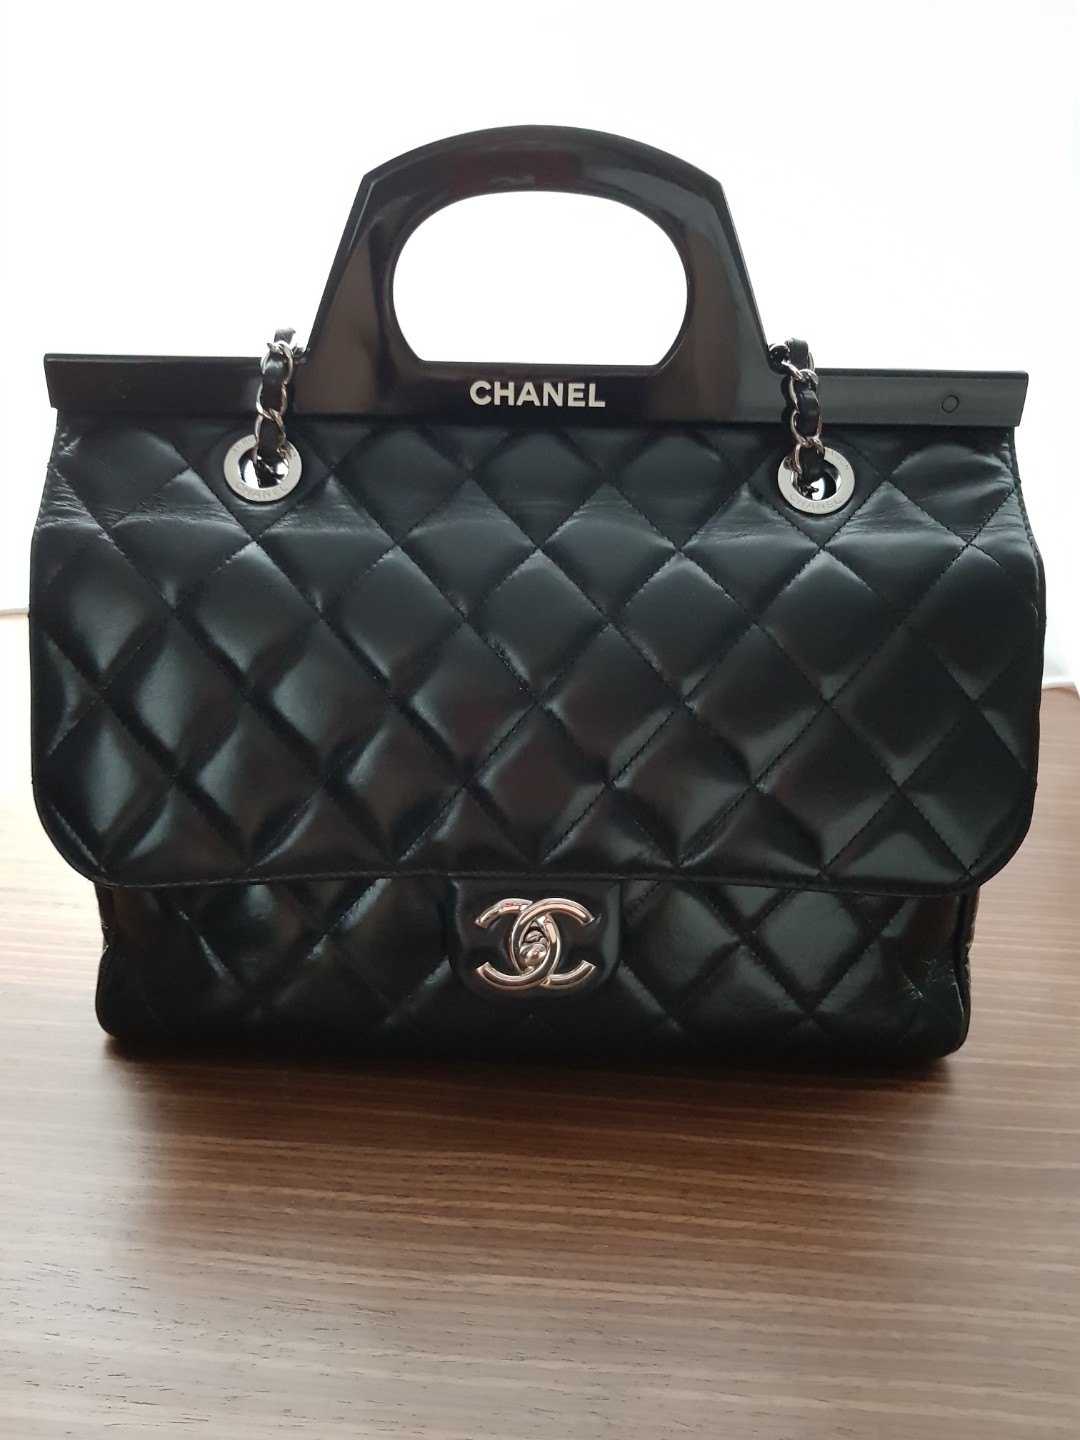 a159057d33aa Pre-loved Chanel bag for sale, Luxury, Bags & Wallets, Handbags on ...